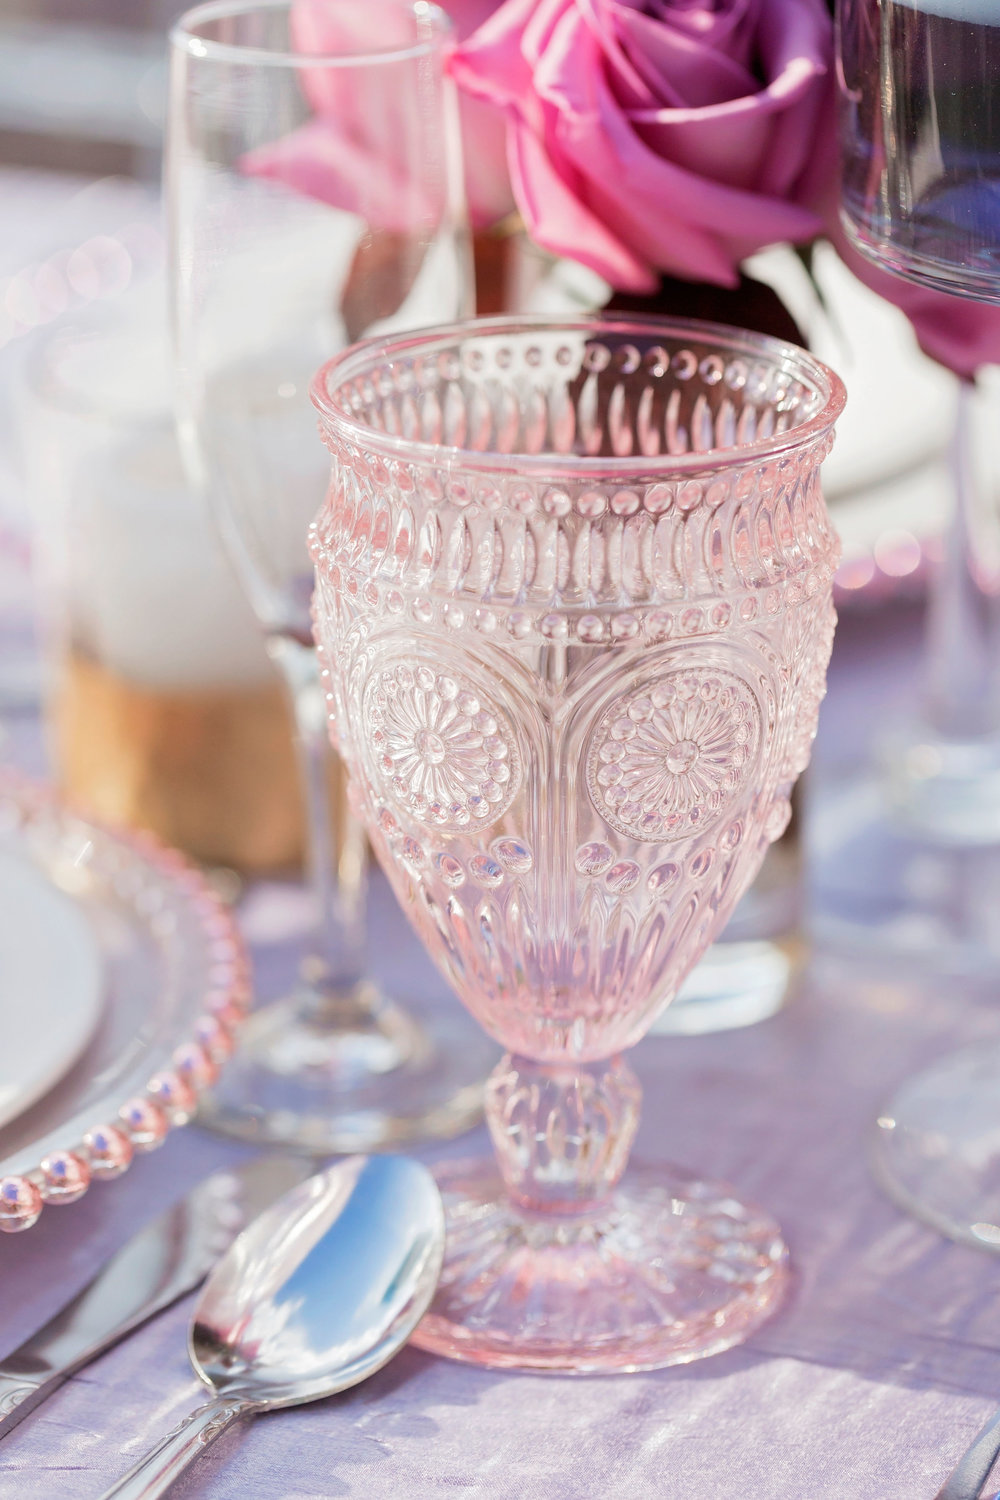 Blush Goblet   Price: $1.75  Quantity Available: 100